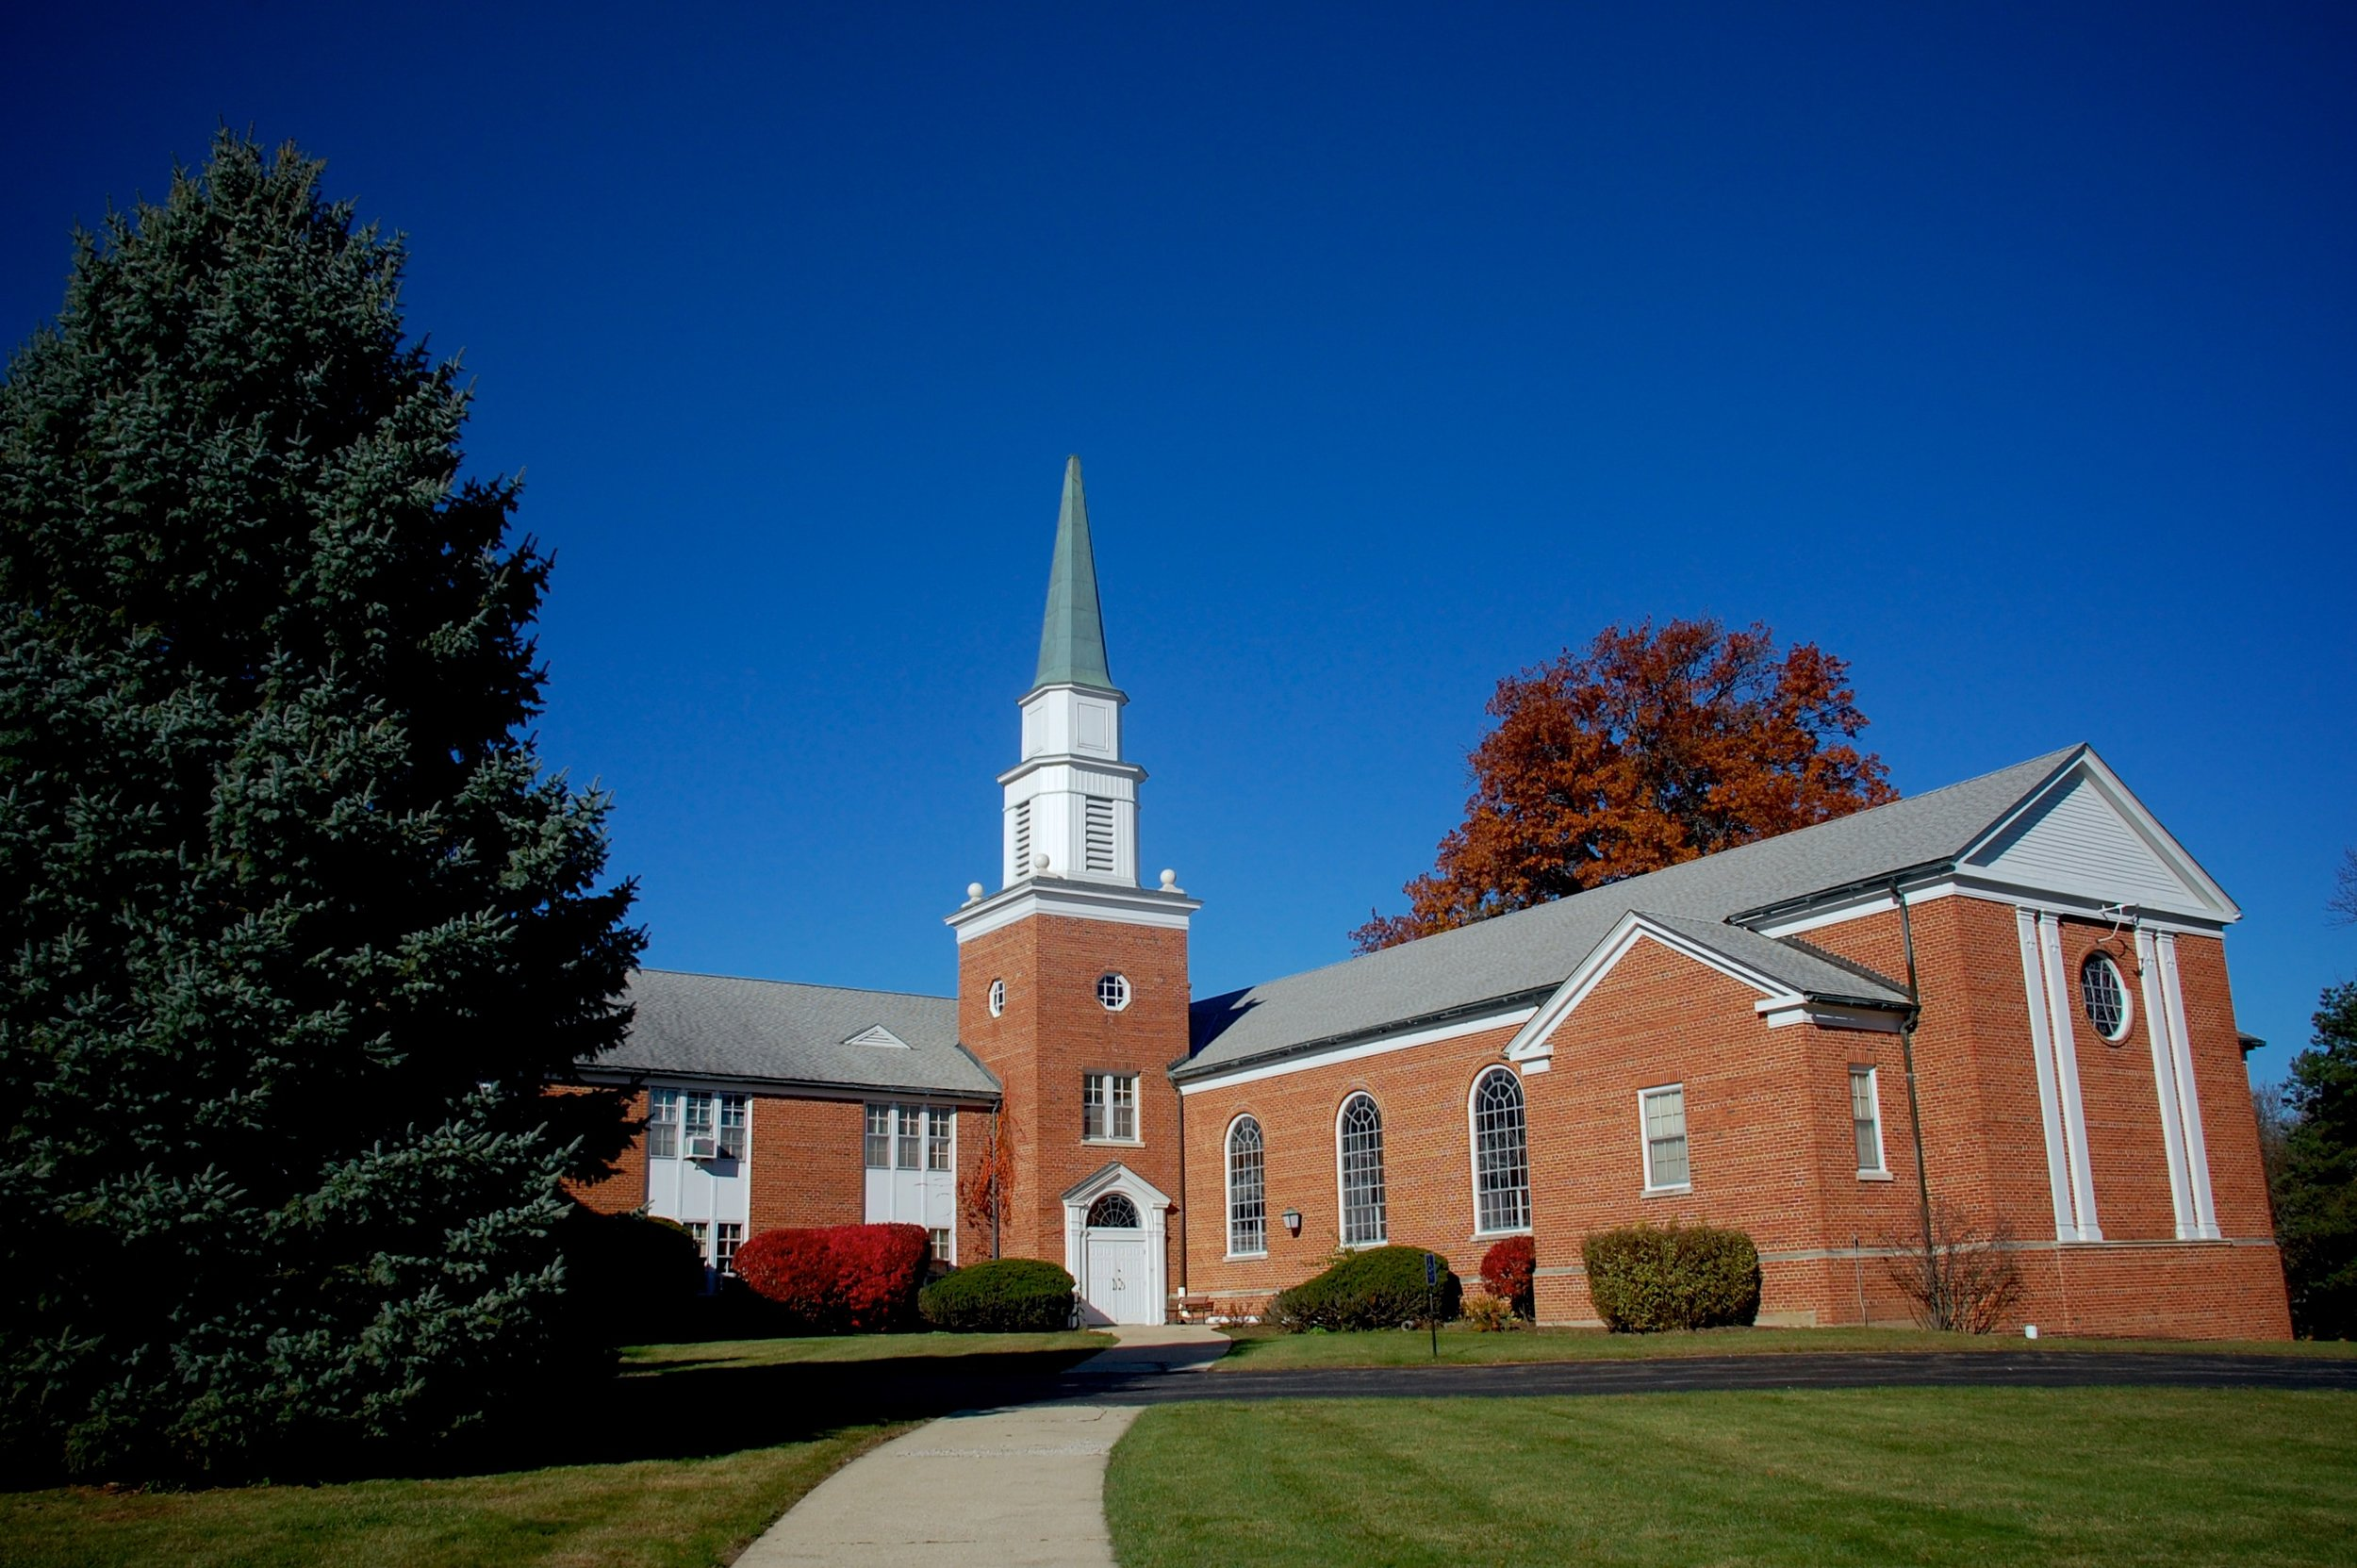 We opened the doors of our church on July 4th, 1954.